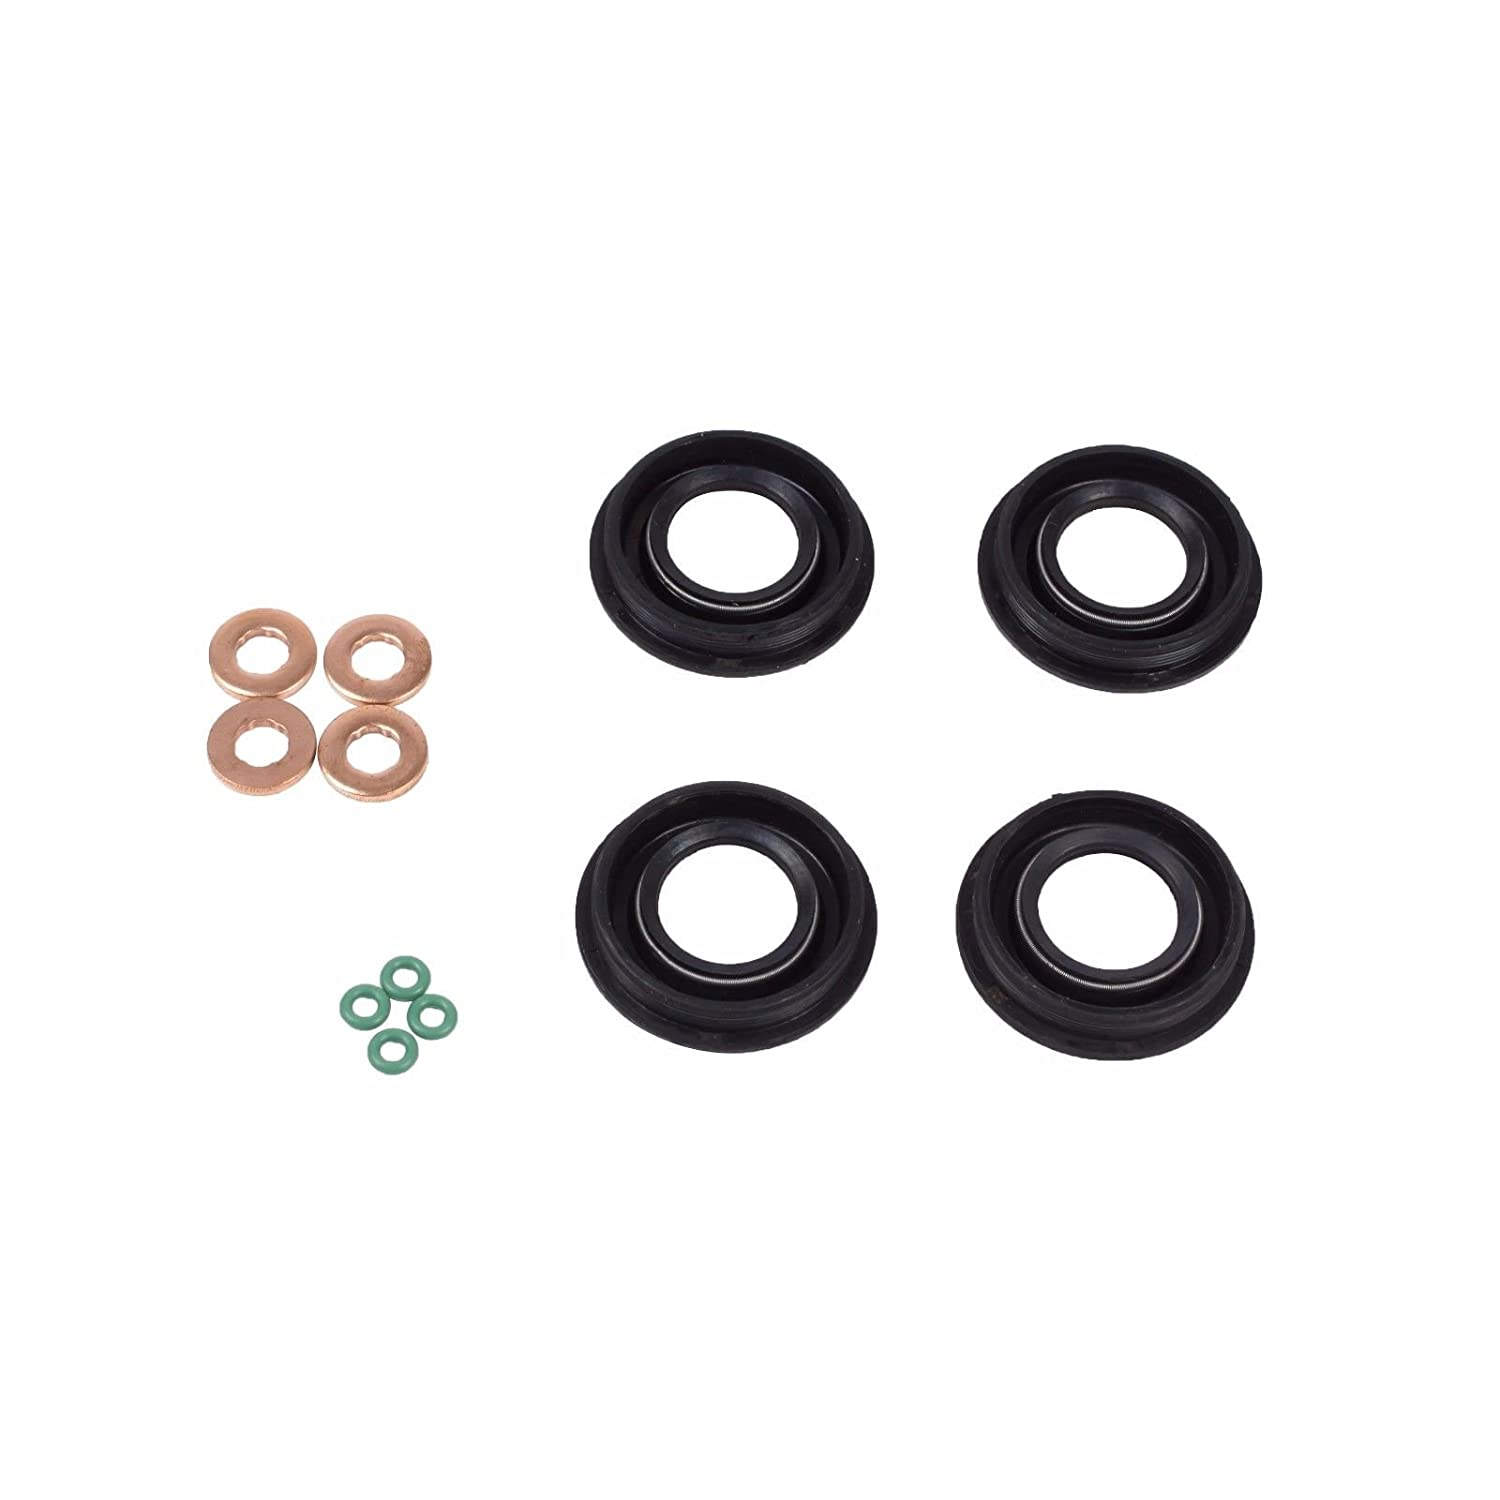 ORING SET FOR LAND ROVER DEFENDER 2.2 2.4 TDCi WASHER O.E FUEL INJECTOR SEAL